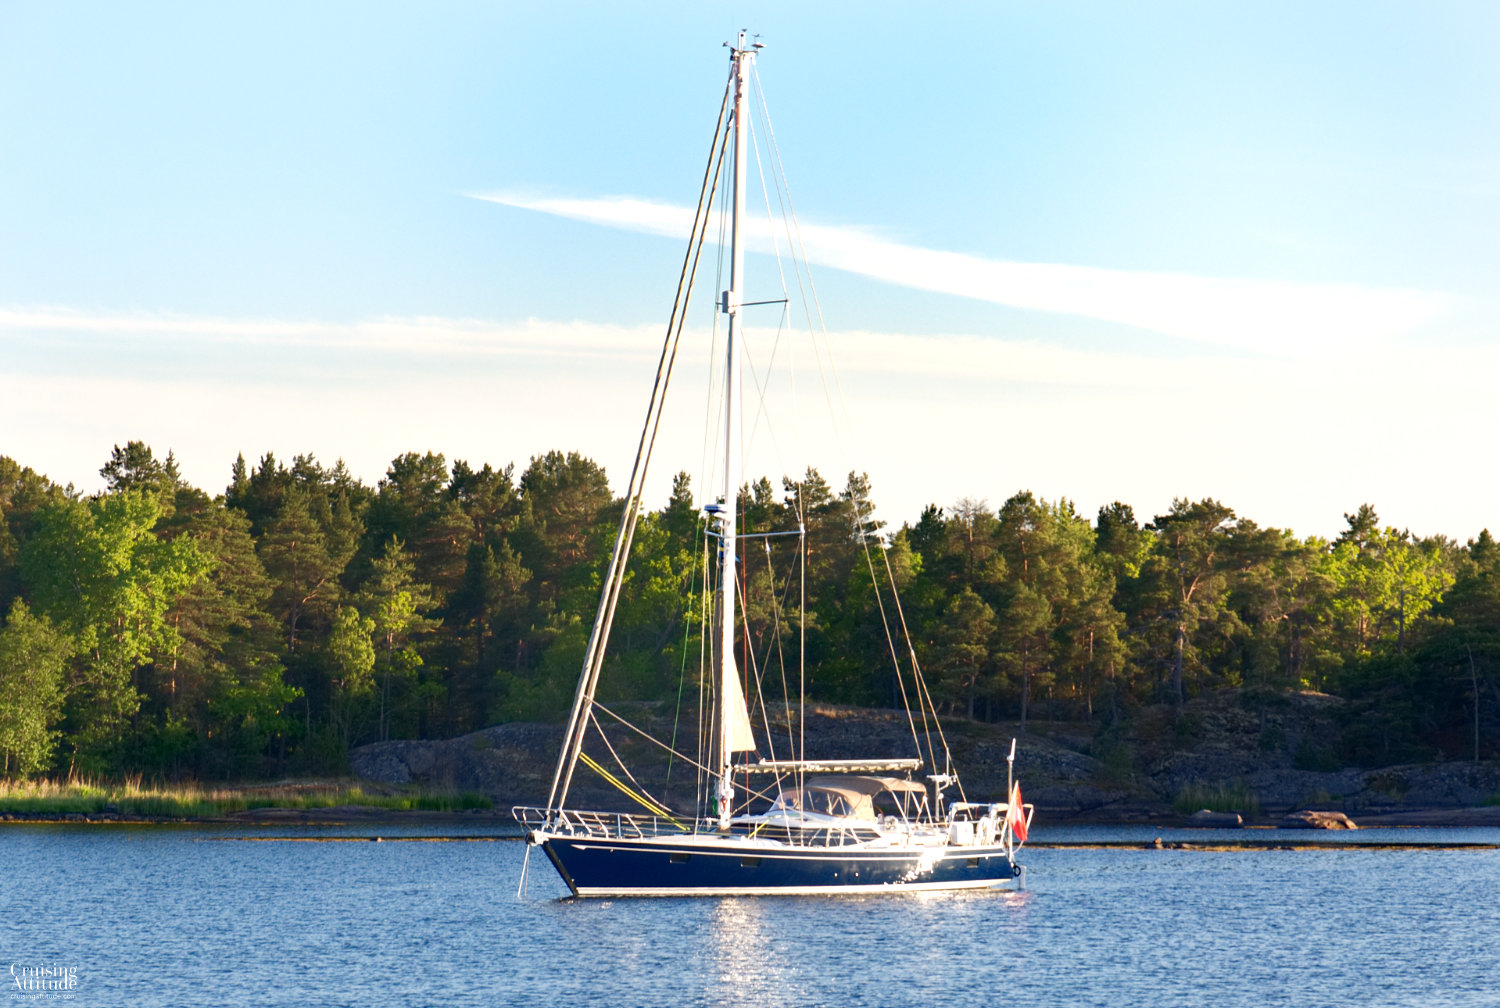 Kiddeholmen Anchorage | Cruising Attitude Sailing Blog - Discovery 55